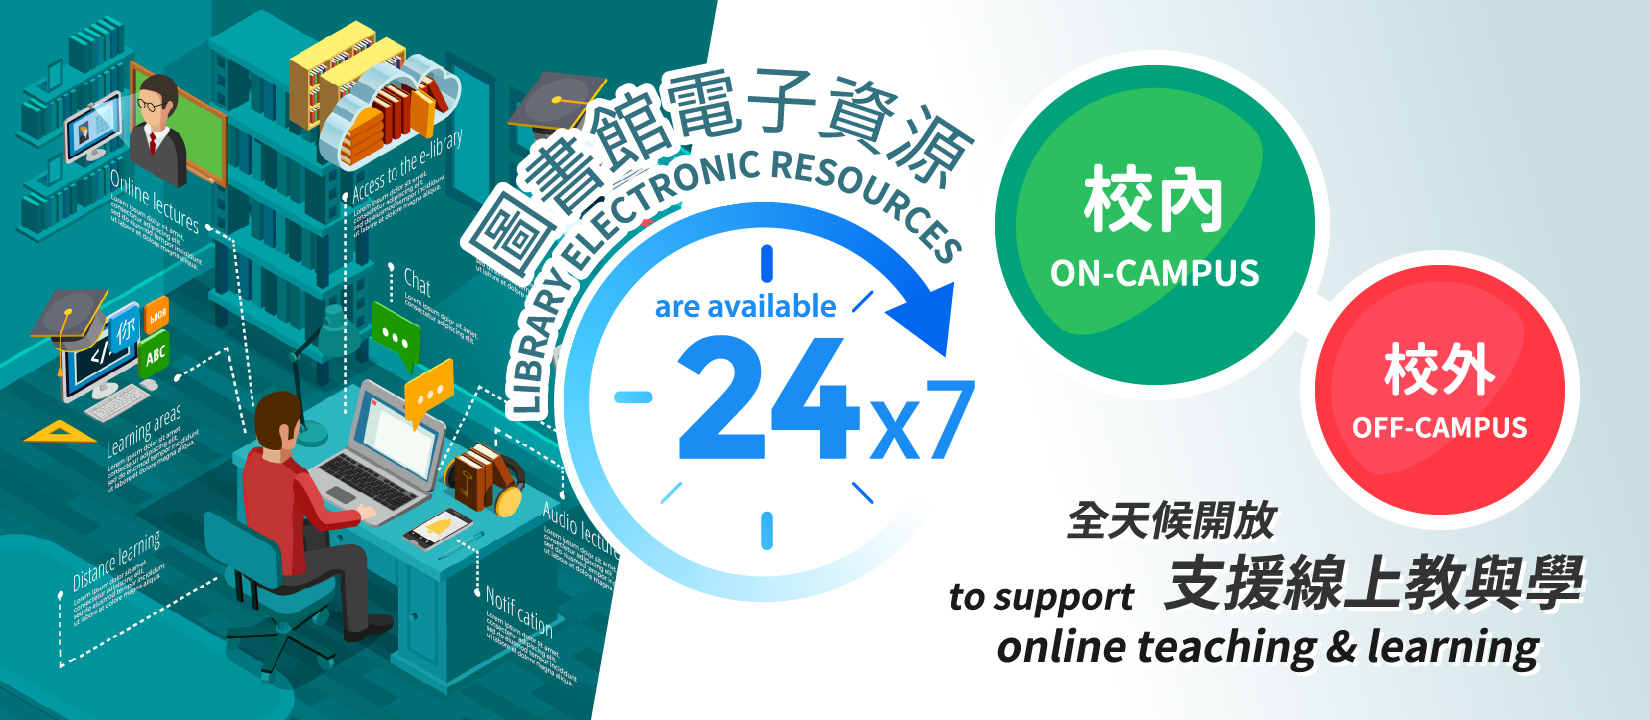 Library Electronic Resources are Available 24x7, On- and Off-Campus to Support Online Teaching & Learning.